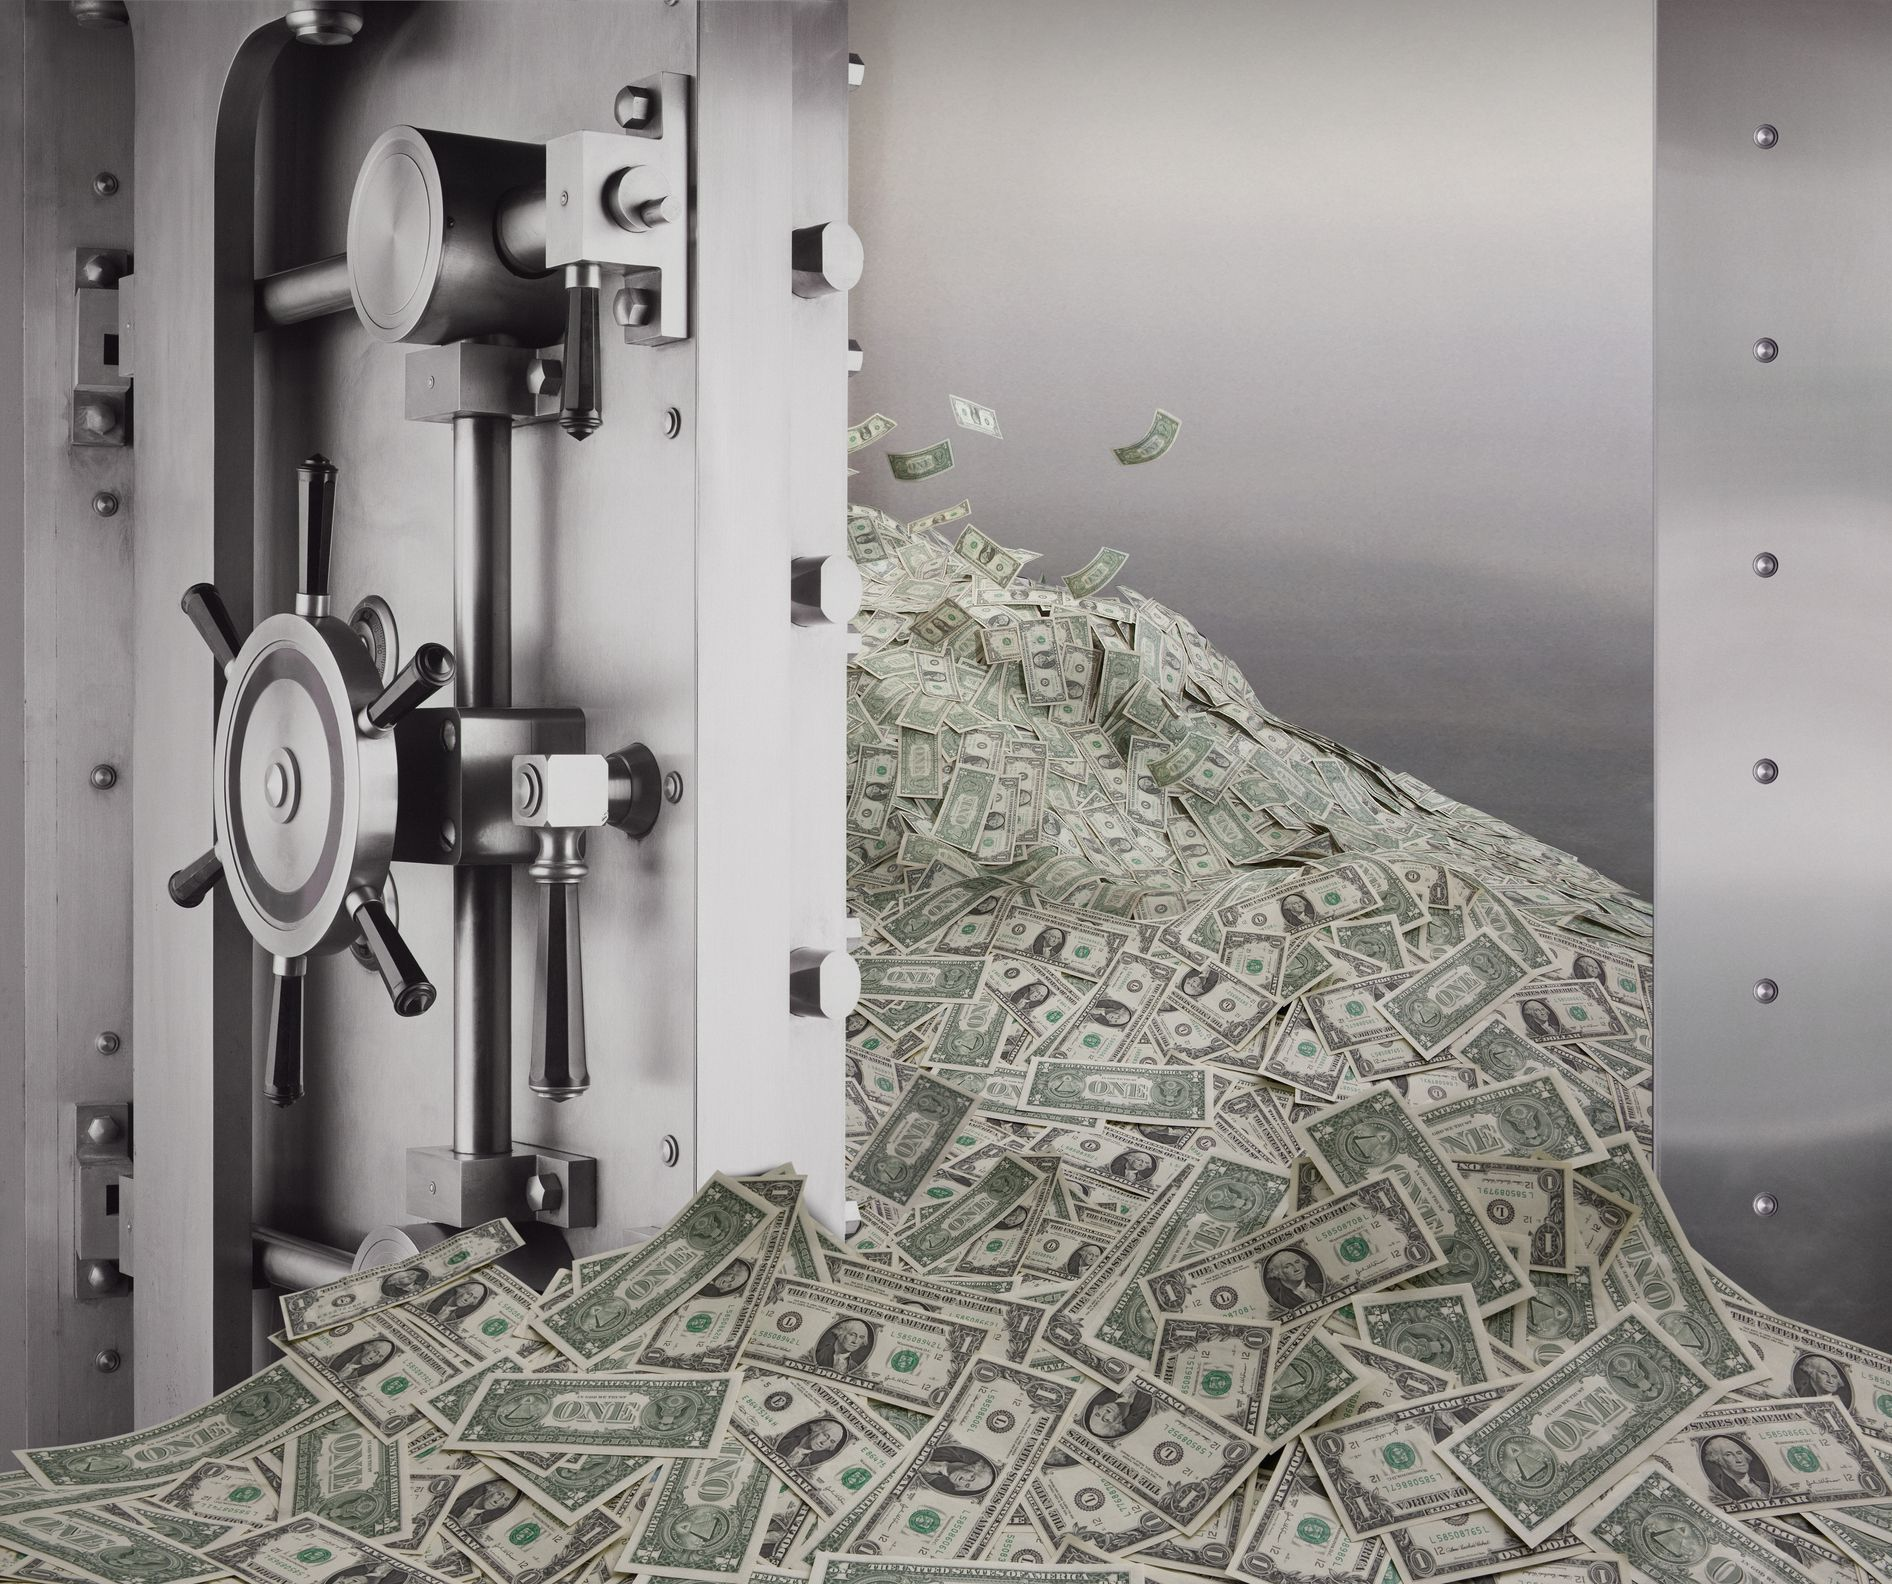 money pouring out of a bank vault 109707297 575a03713df78c9b464a1bf6